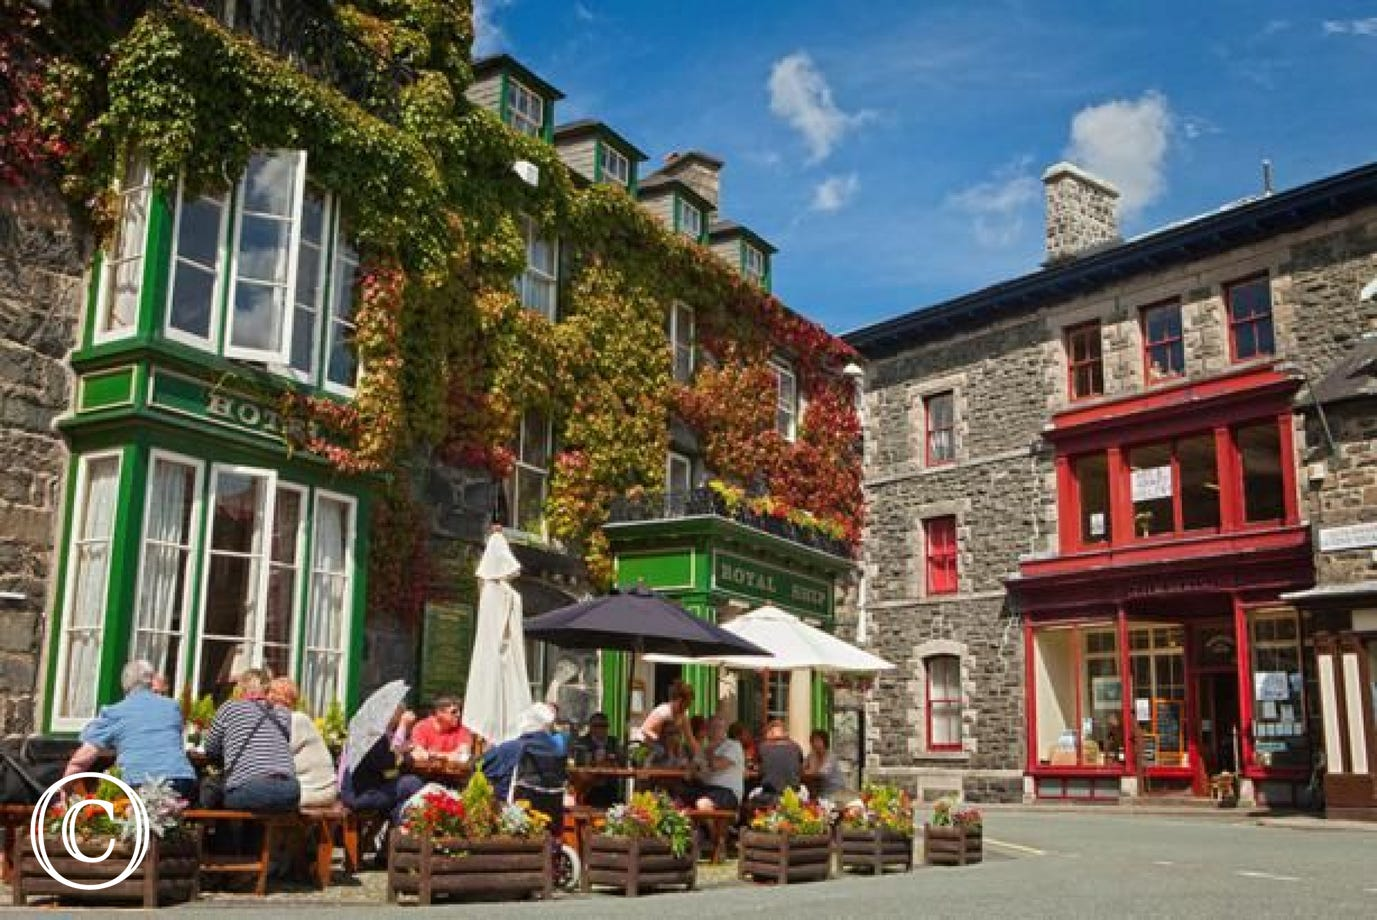 Just 2 miles away are Dolgellau's restaurants, shops and bars